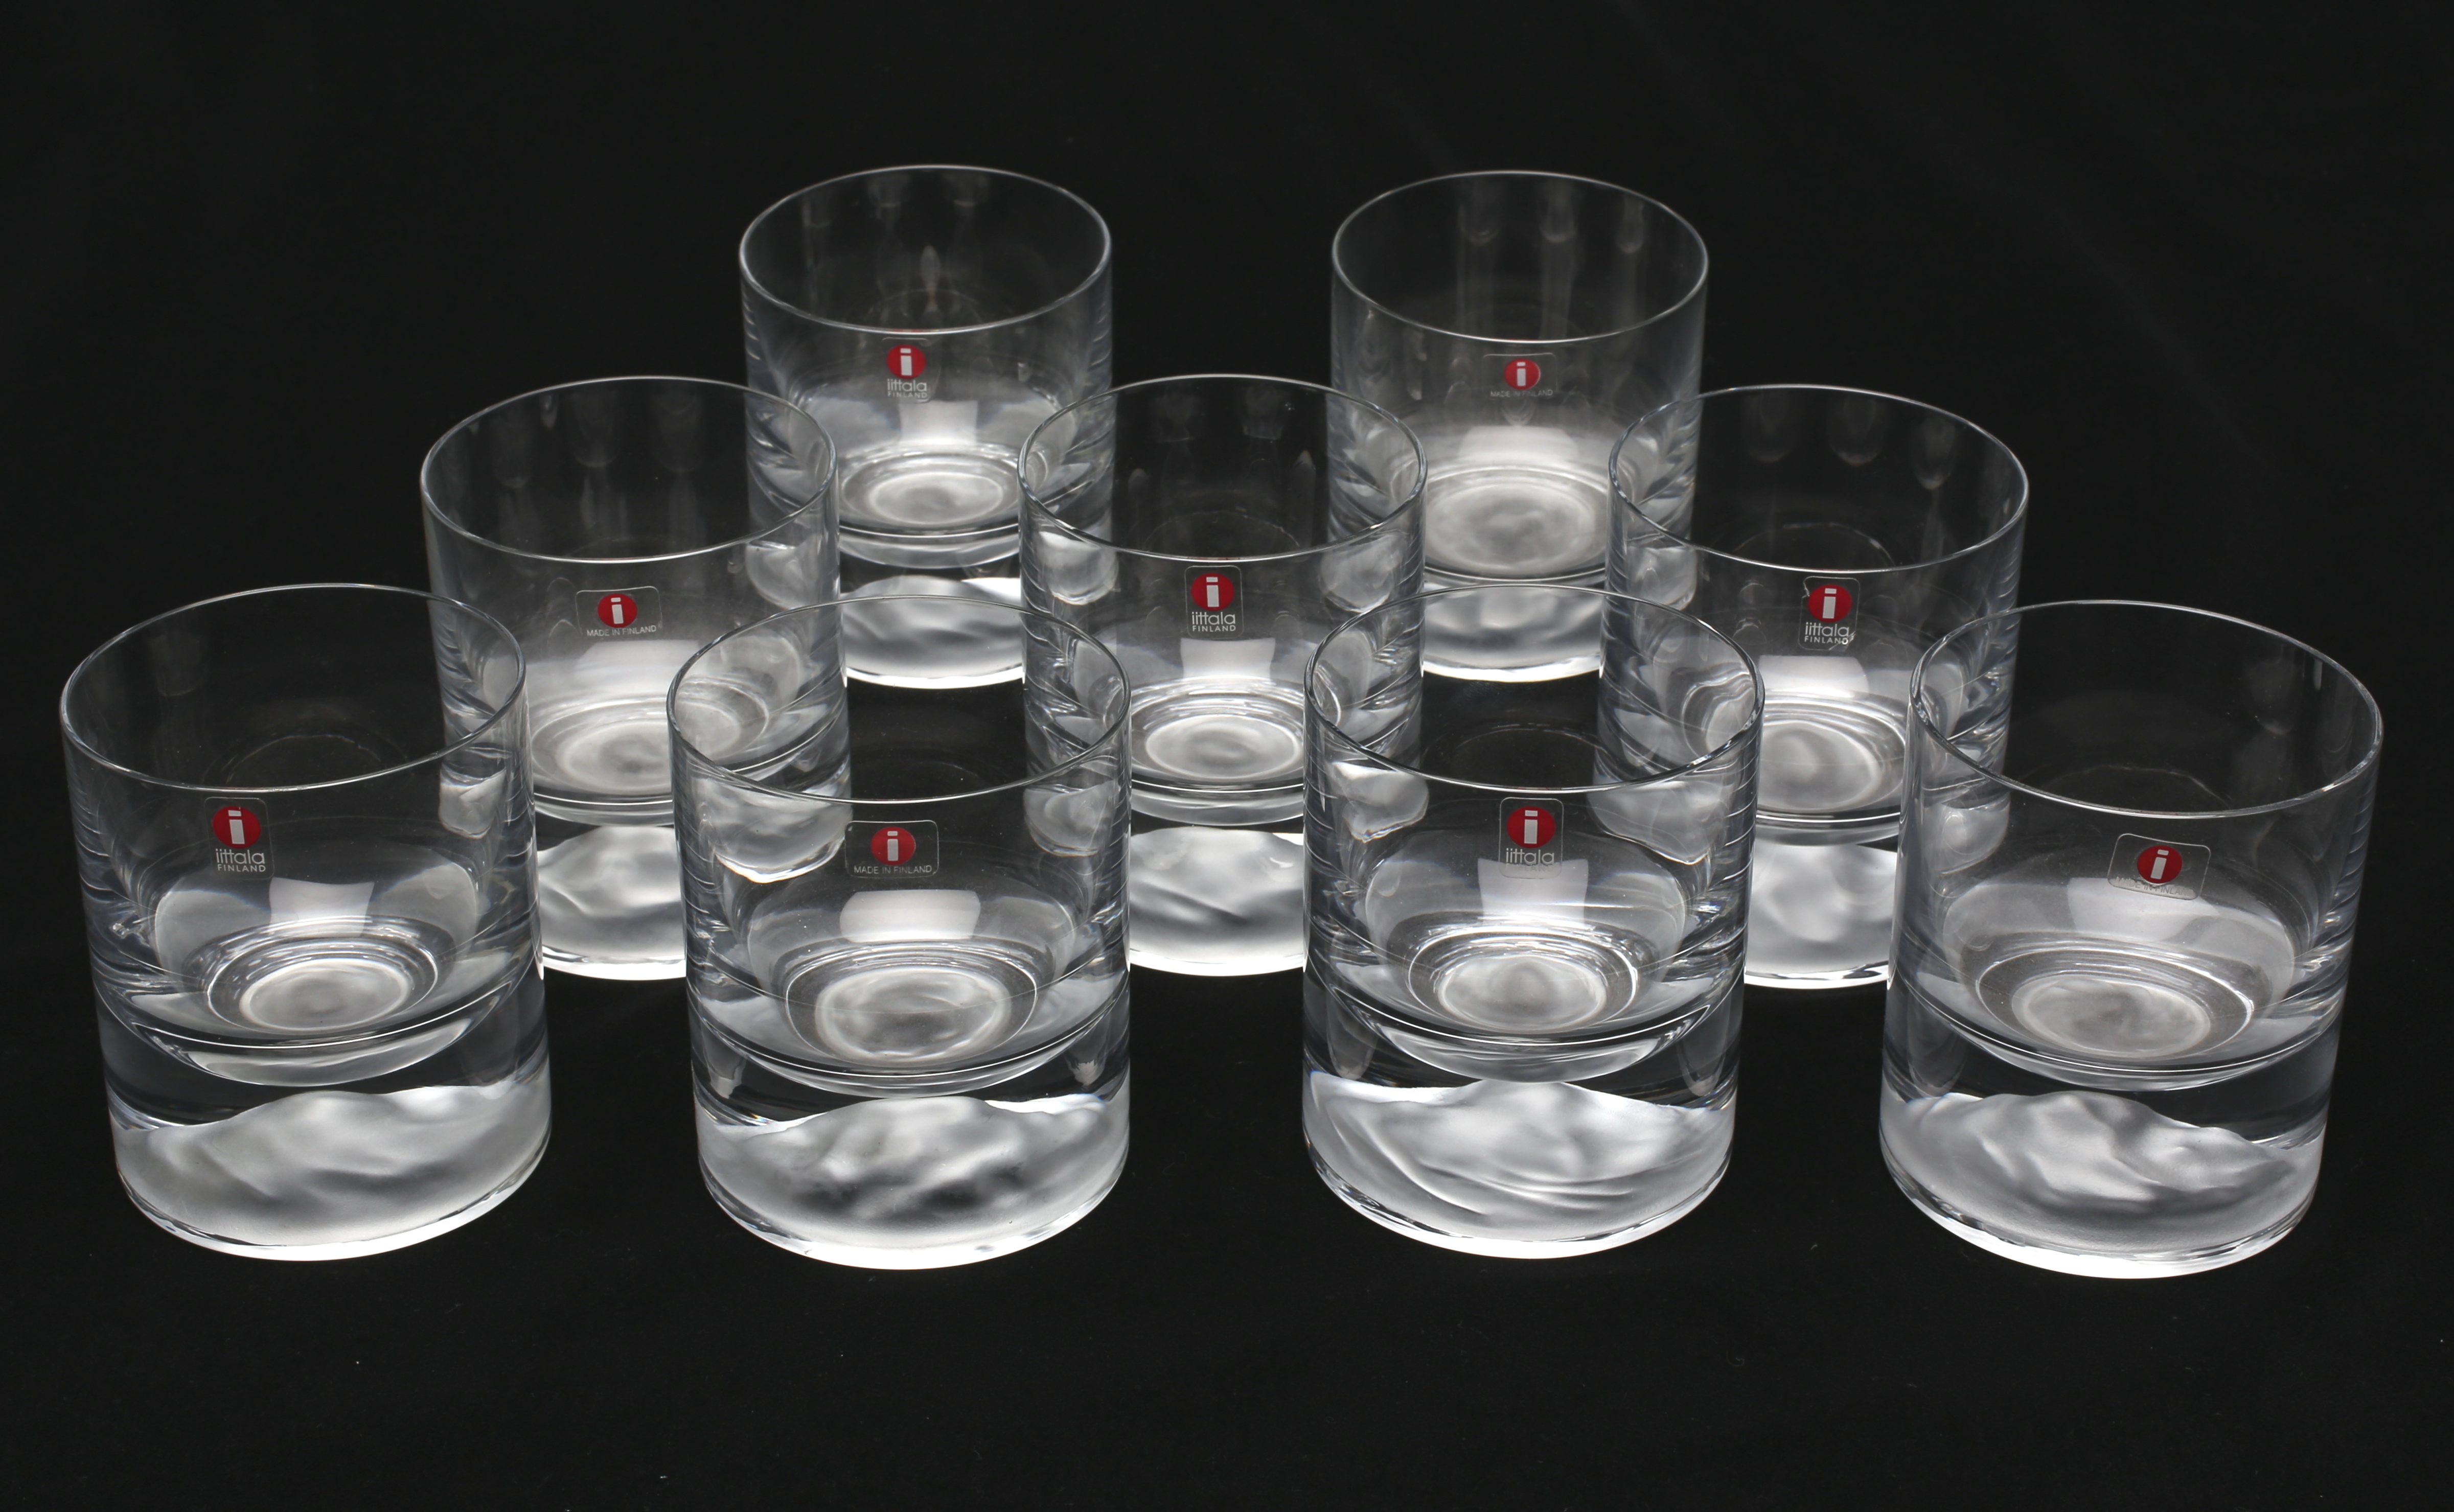 bilder f r 179549 glas himalaya iittala 9 st auctionet. Black Bedroom Furniture Sets. Home Design Ideas